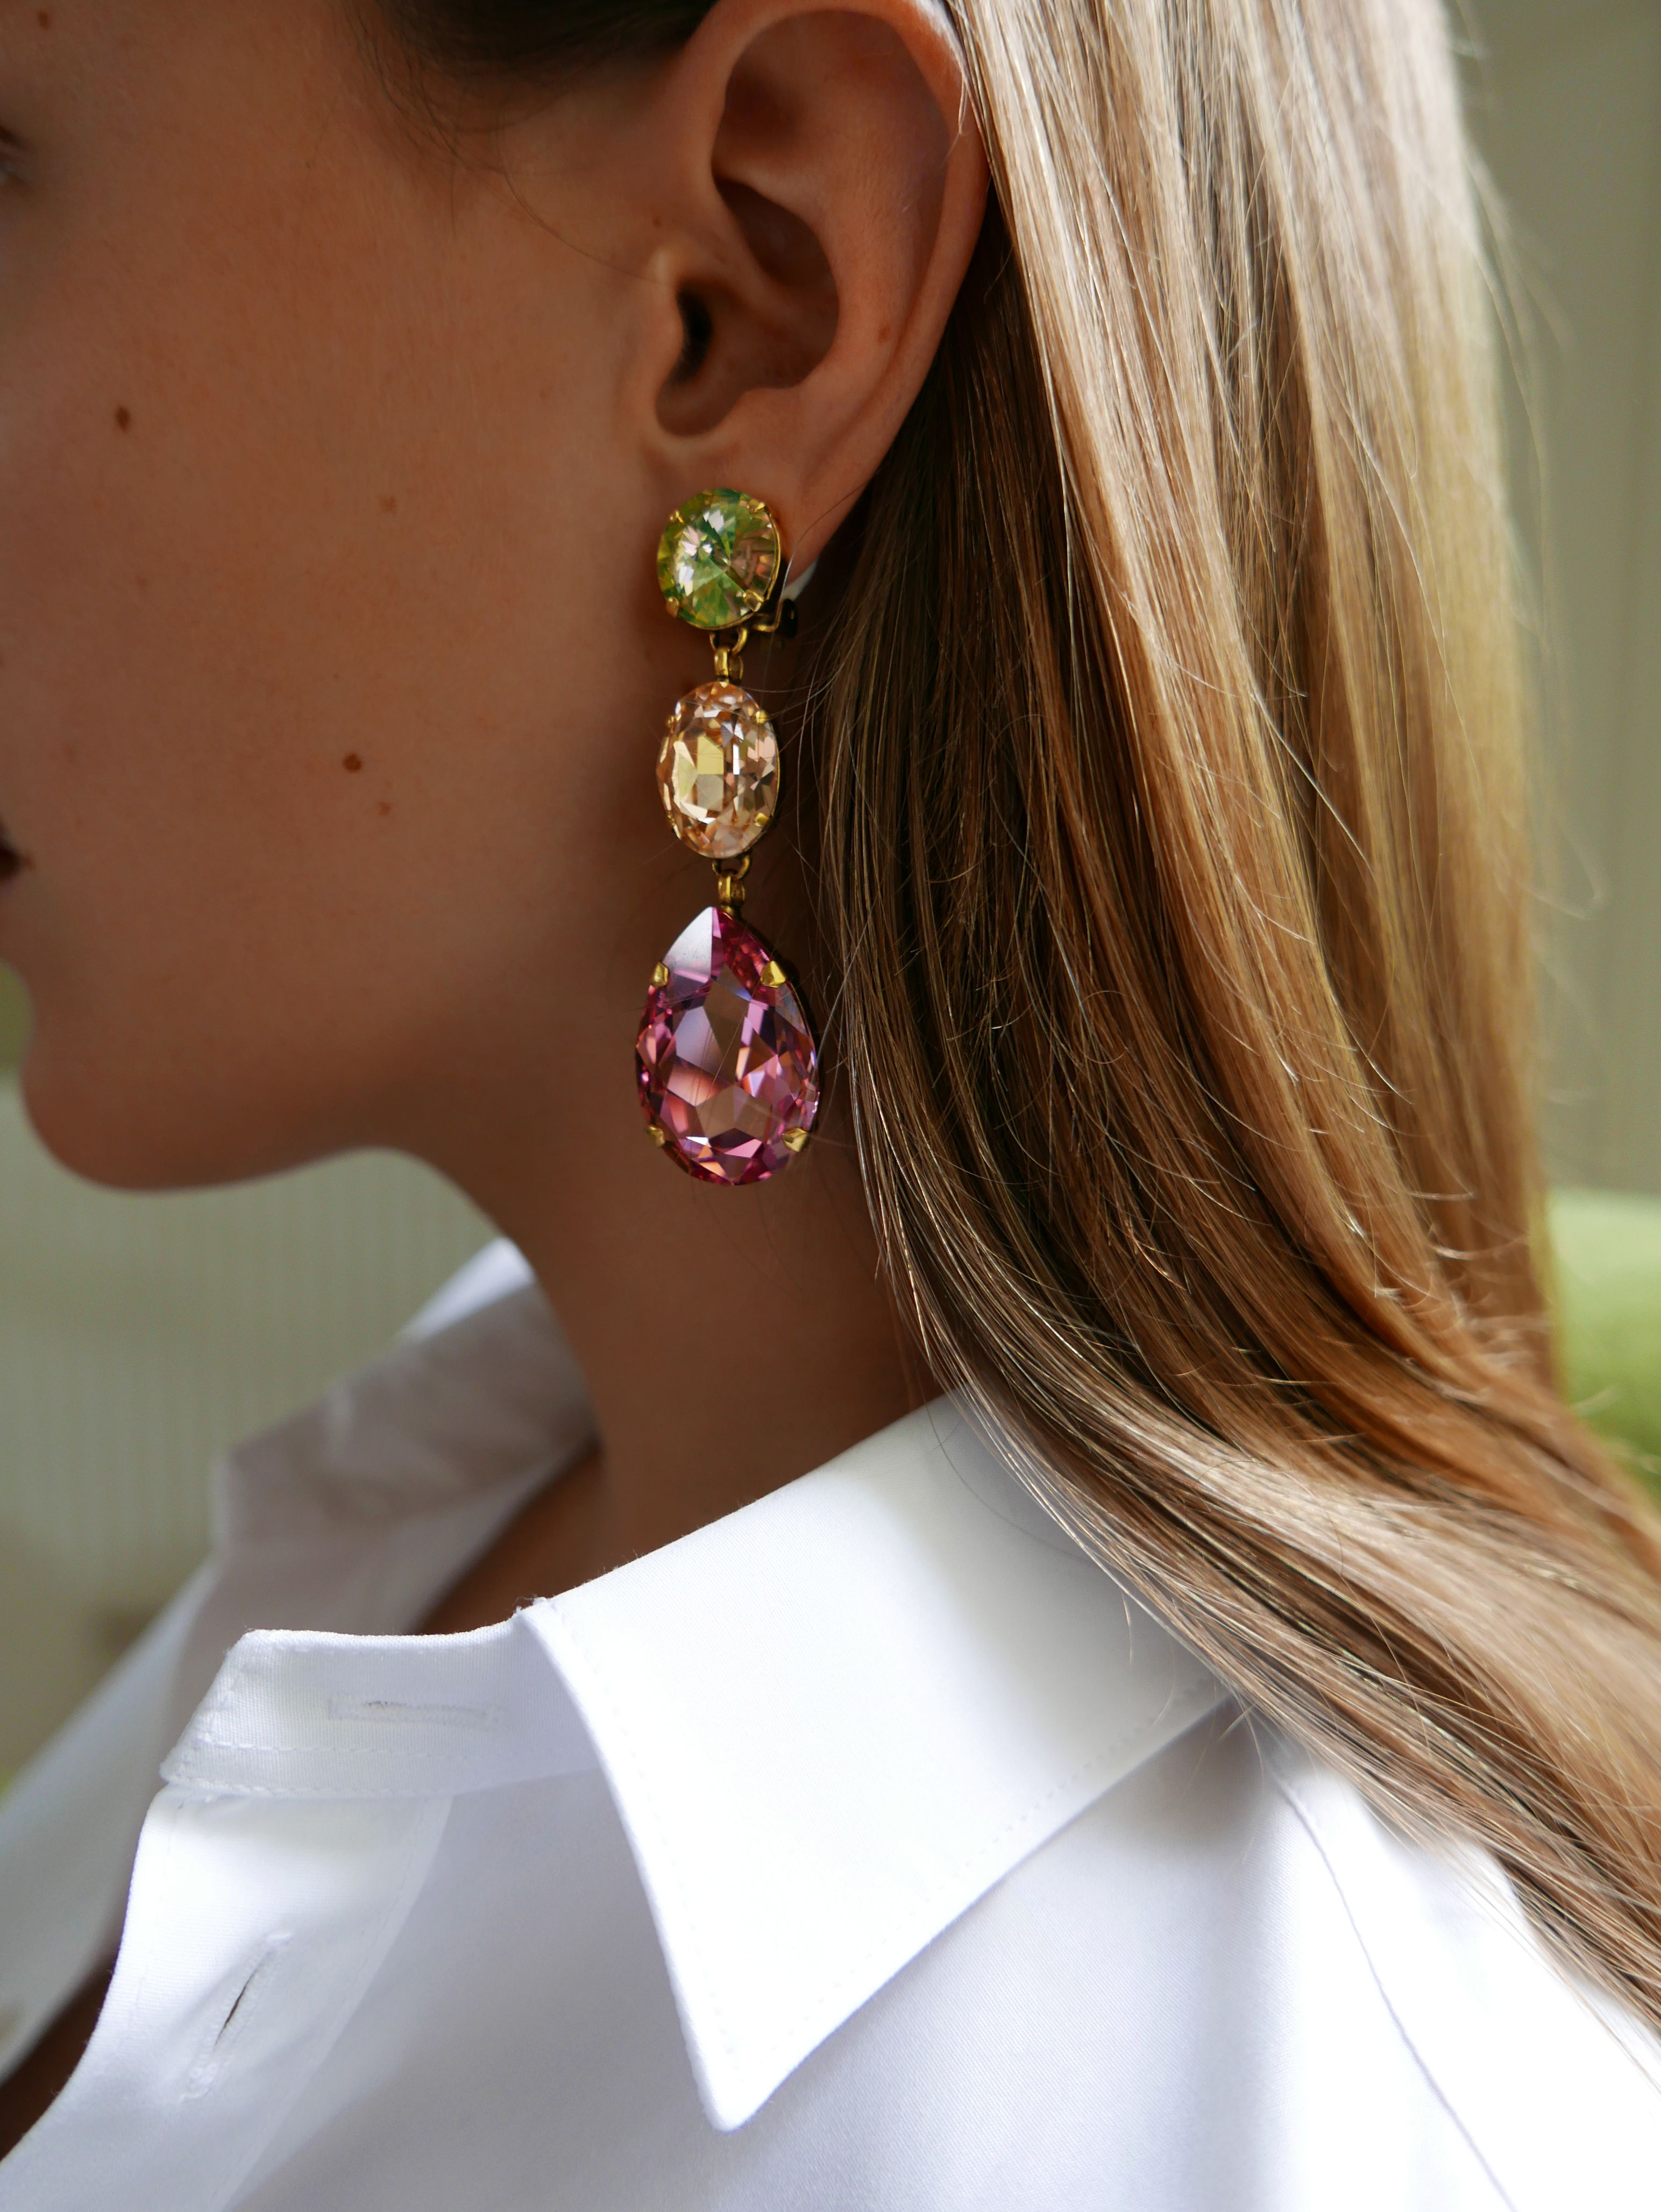 Roxanneassoulinus cult jewelry line is the talk of todayus it girls